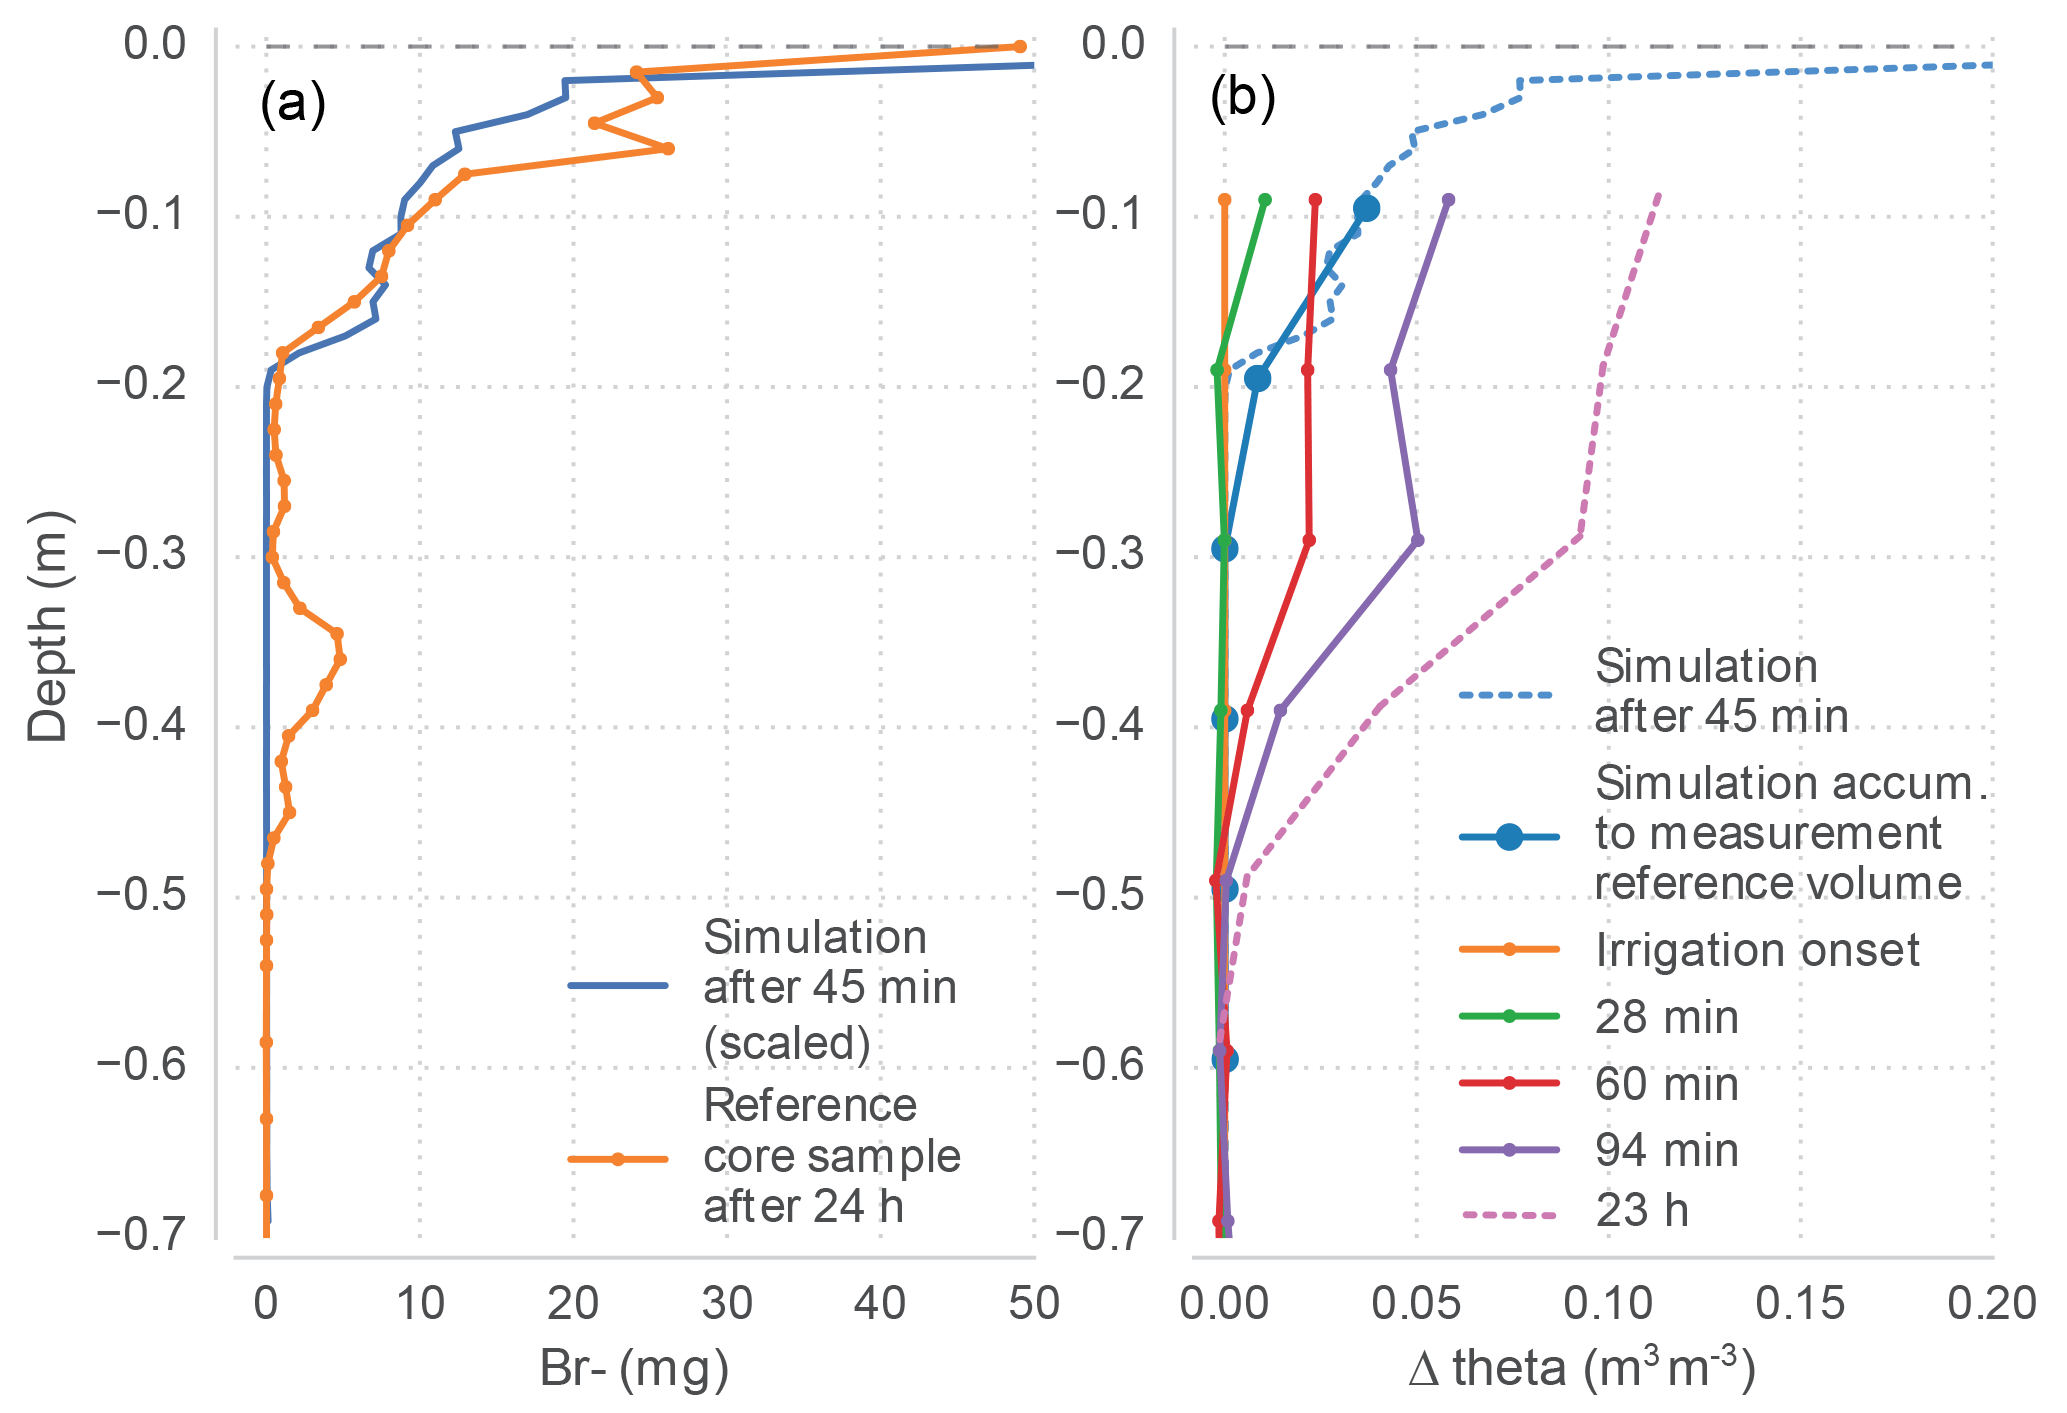 HESS - Ecohydrological particle model based on representative domains